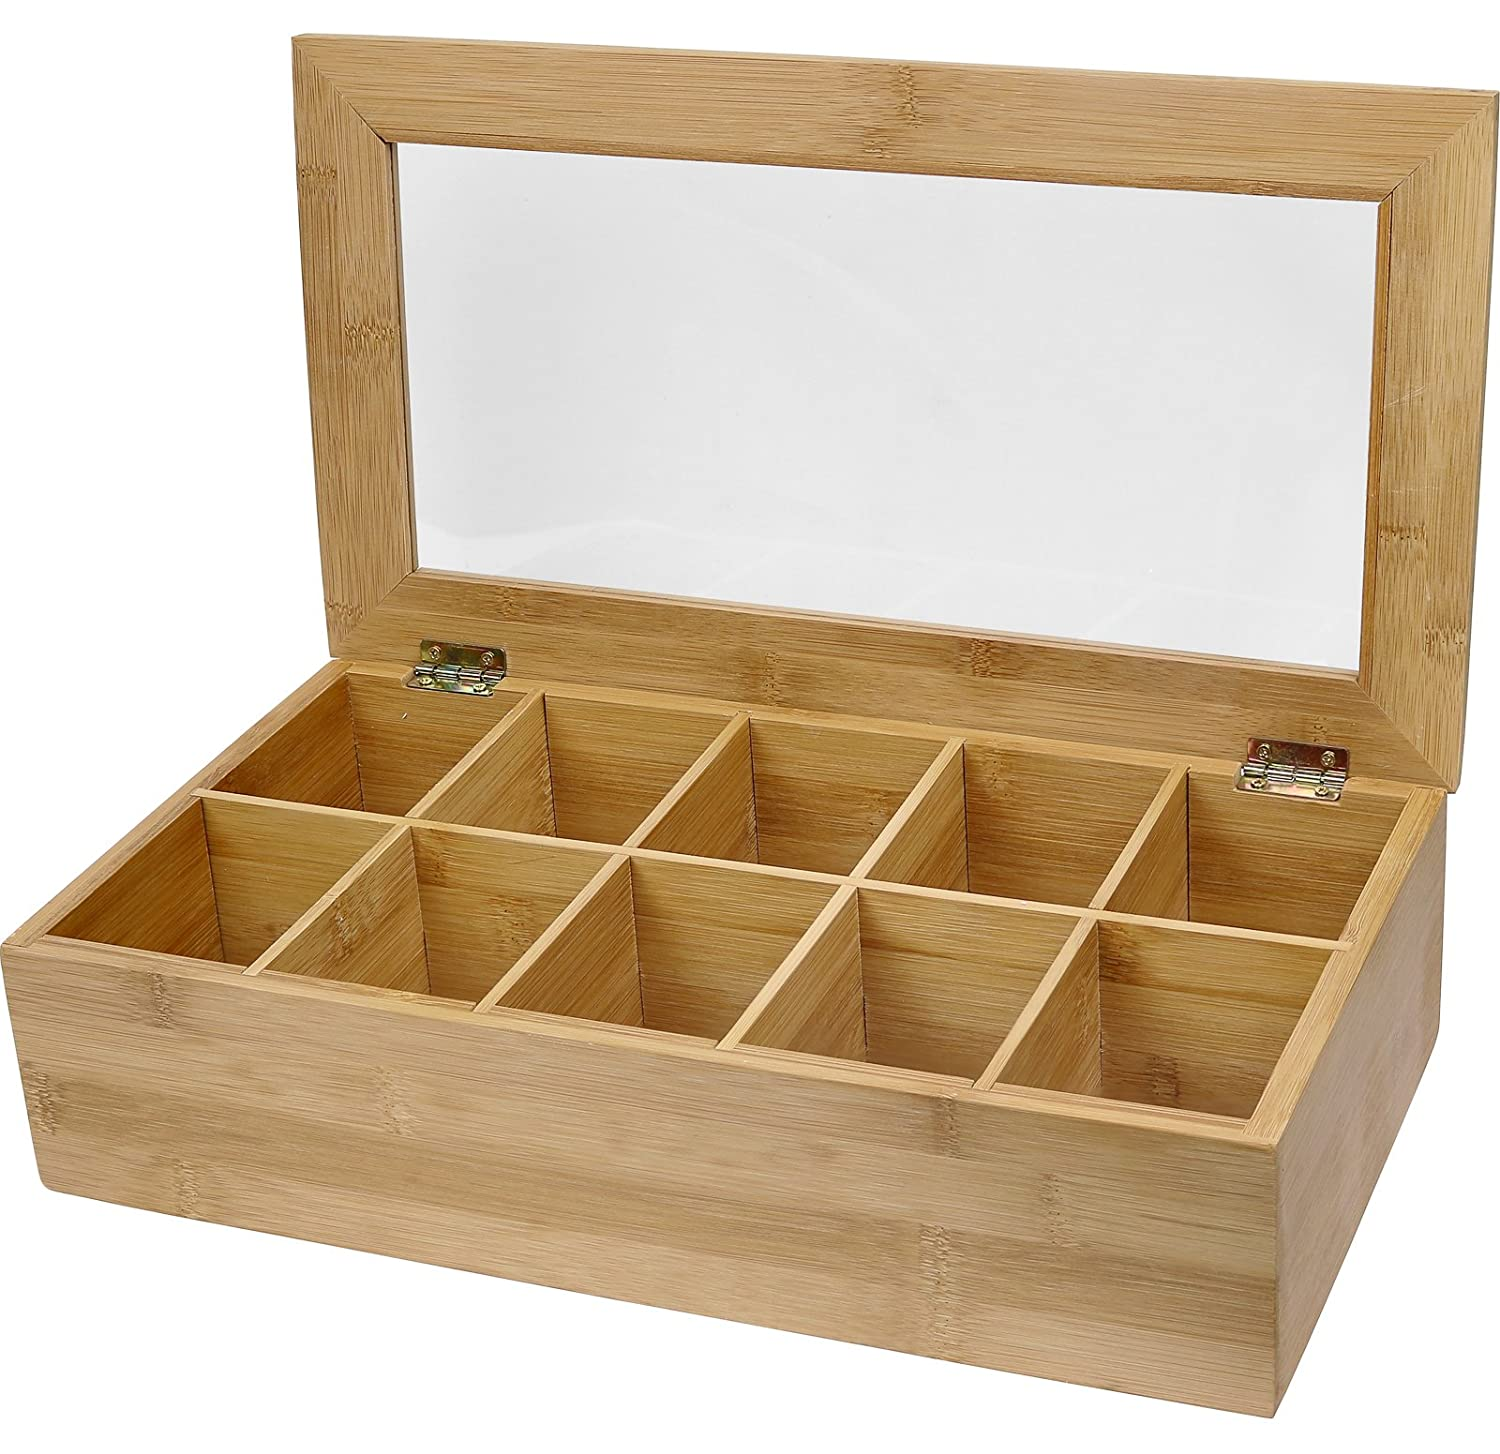 Incroyable Amazon.com: Estilo Bamboo Tea Storage Box, 10 Equally Divided Compartments:  Kitchen U0026 Dining